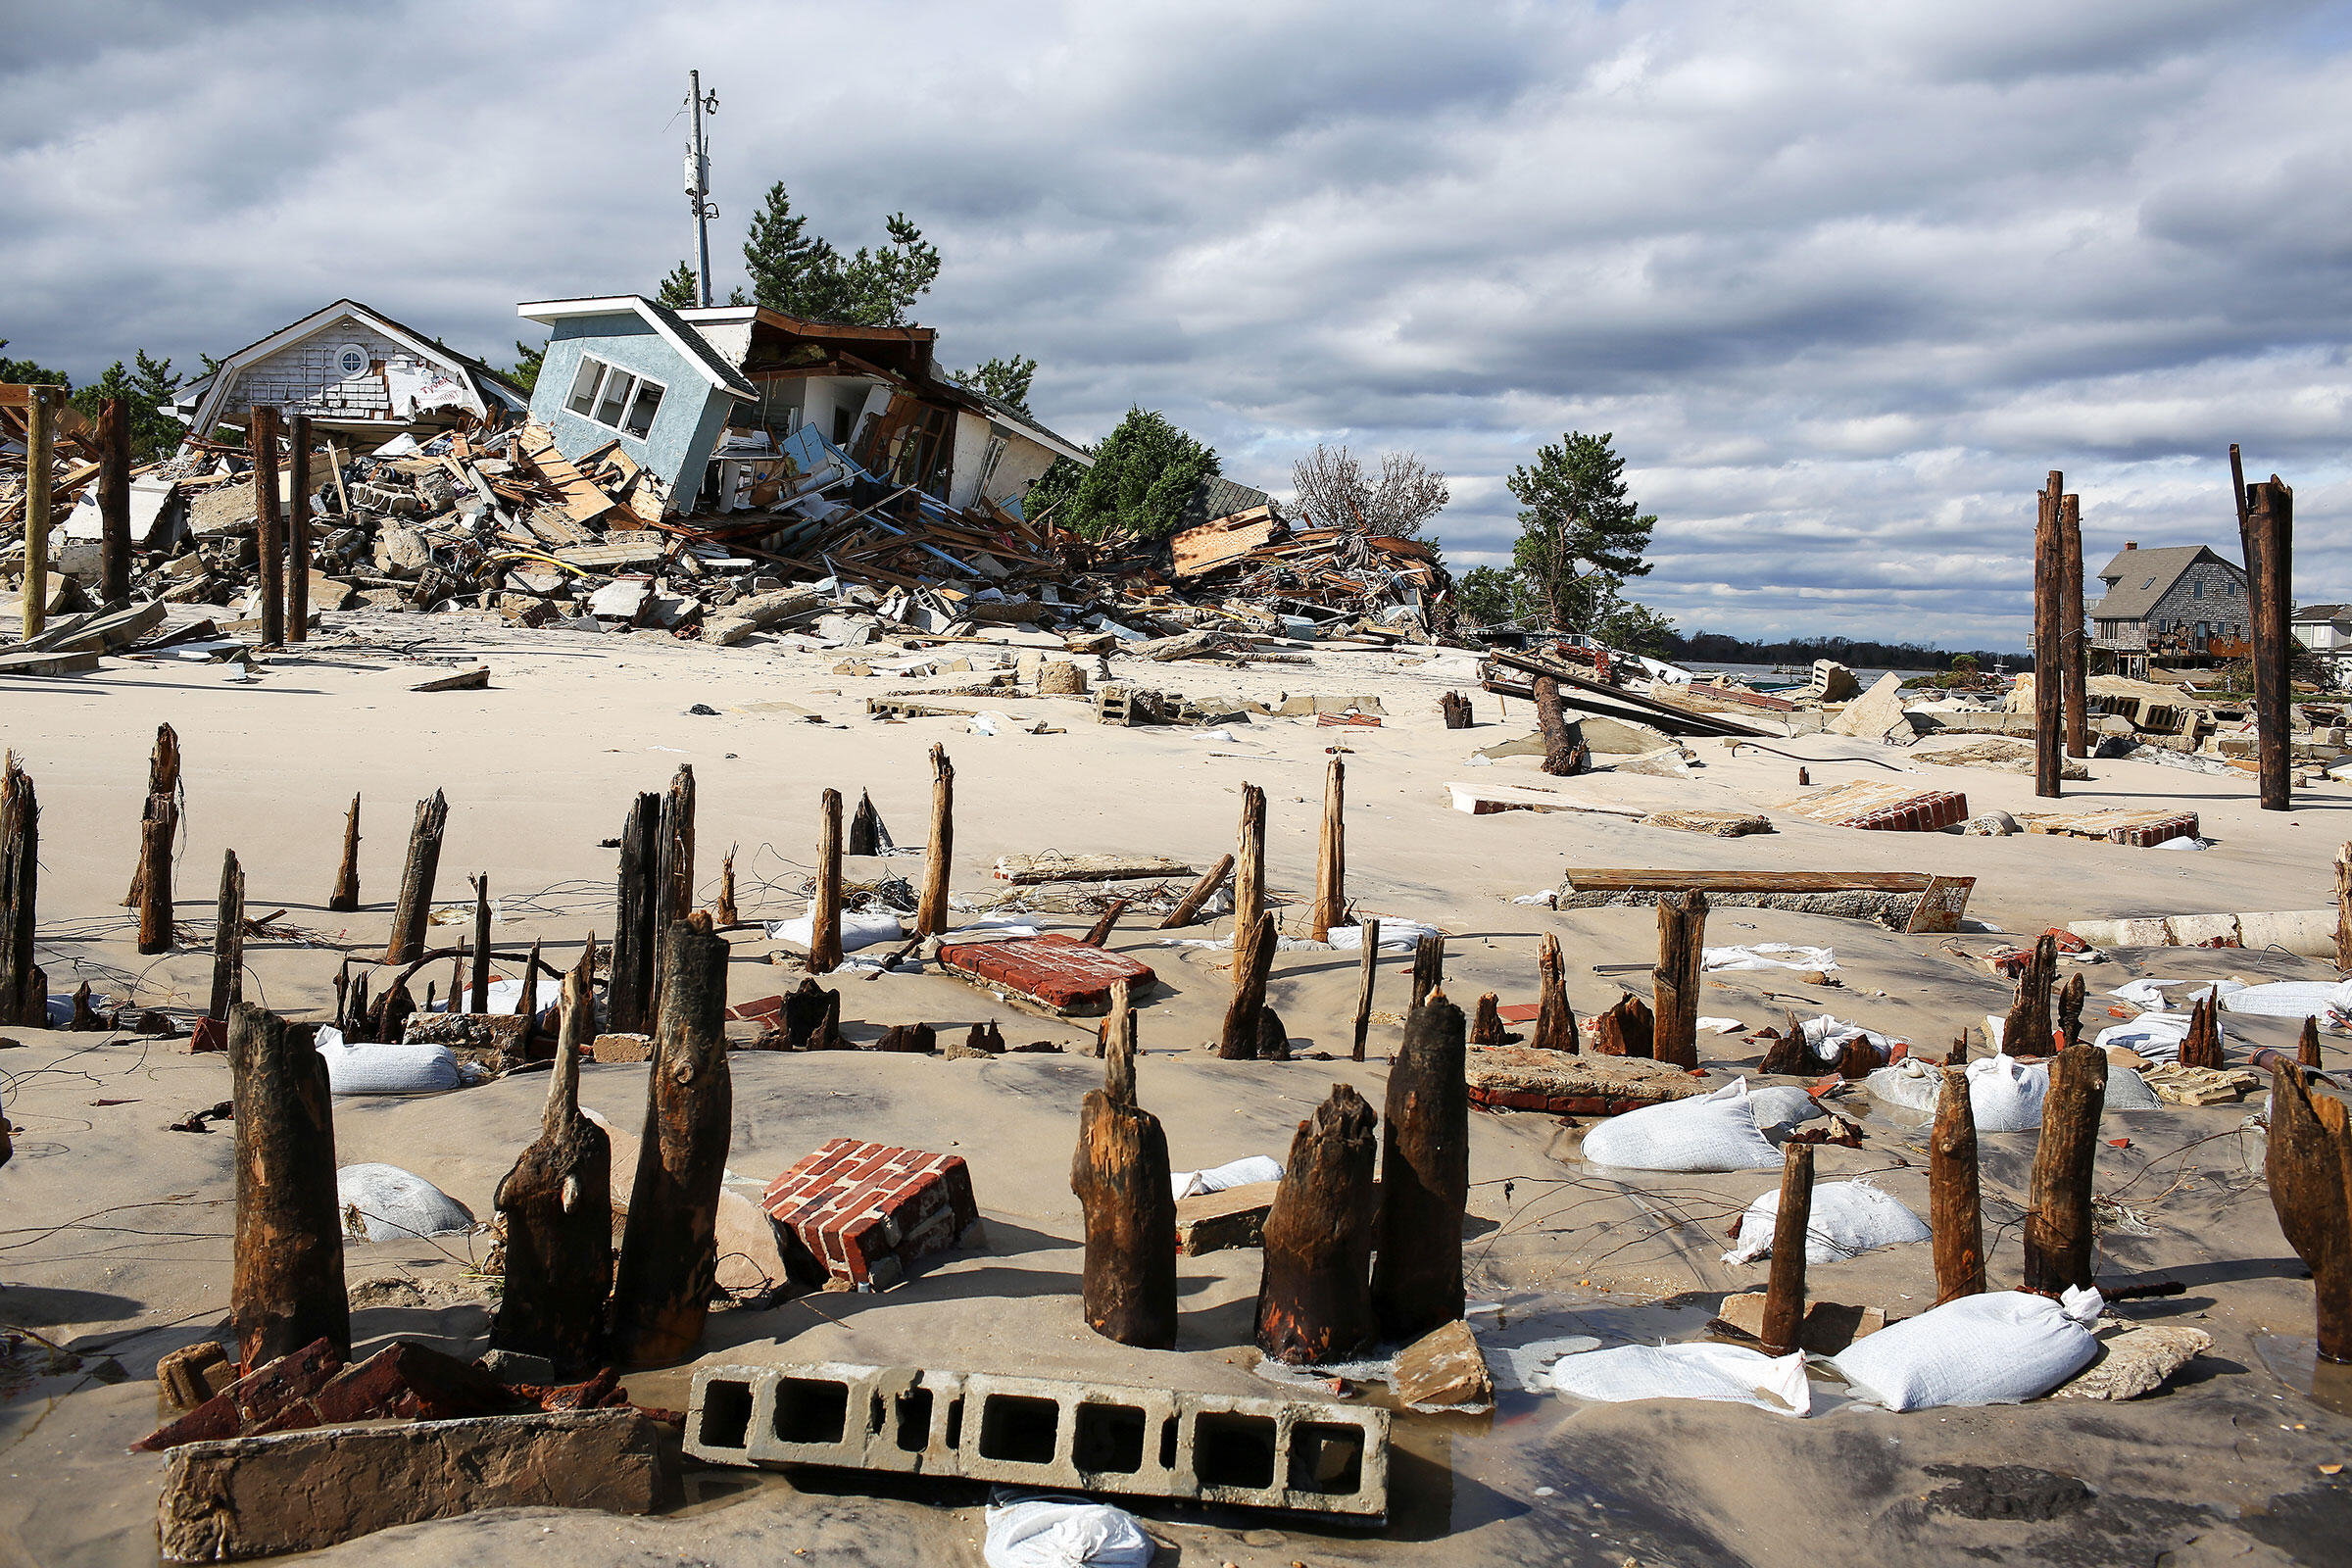 The ruins of the beachfront boardwalk and houses in Mantoloking, NJ, destroyed by Hurricane Sandy. Andrew Quilty/Oculi/Redux